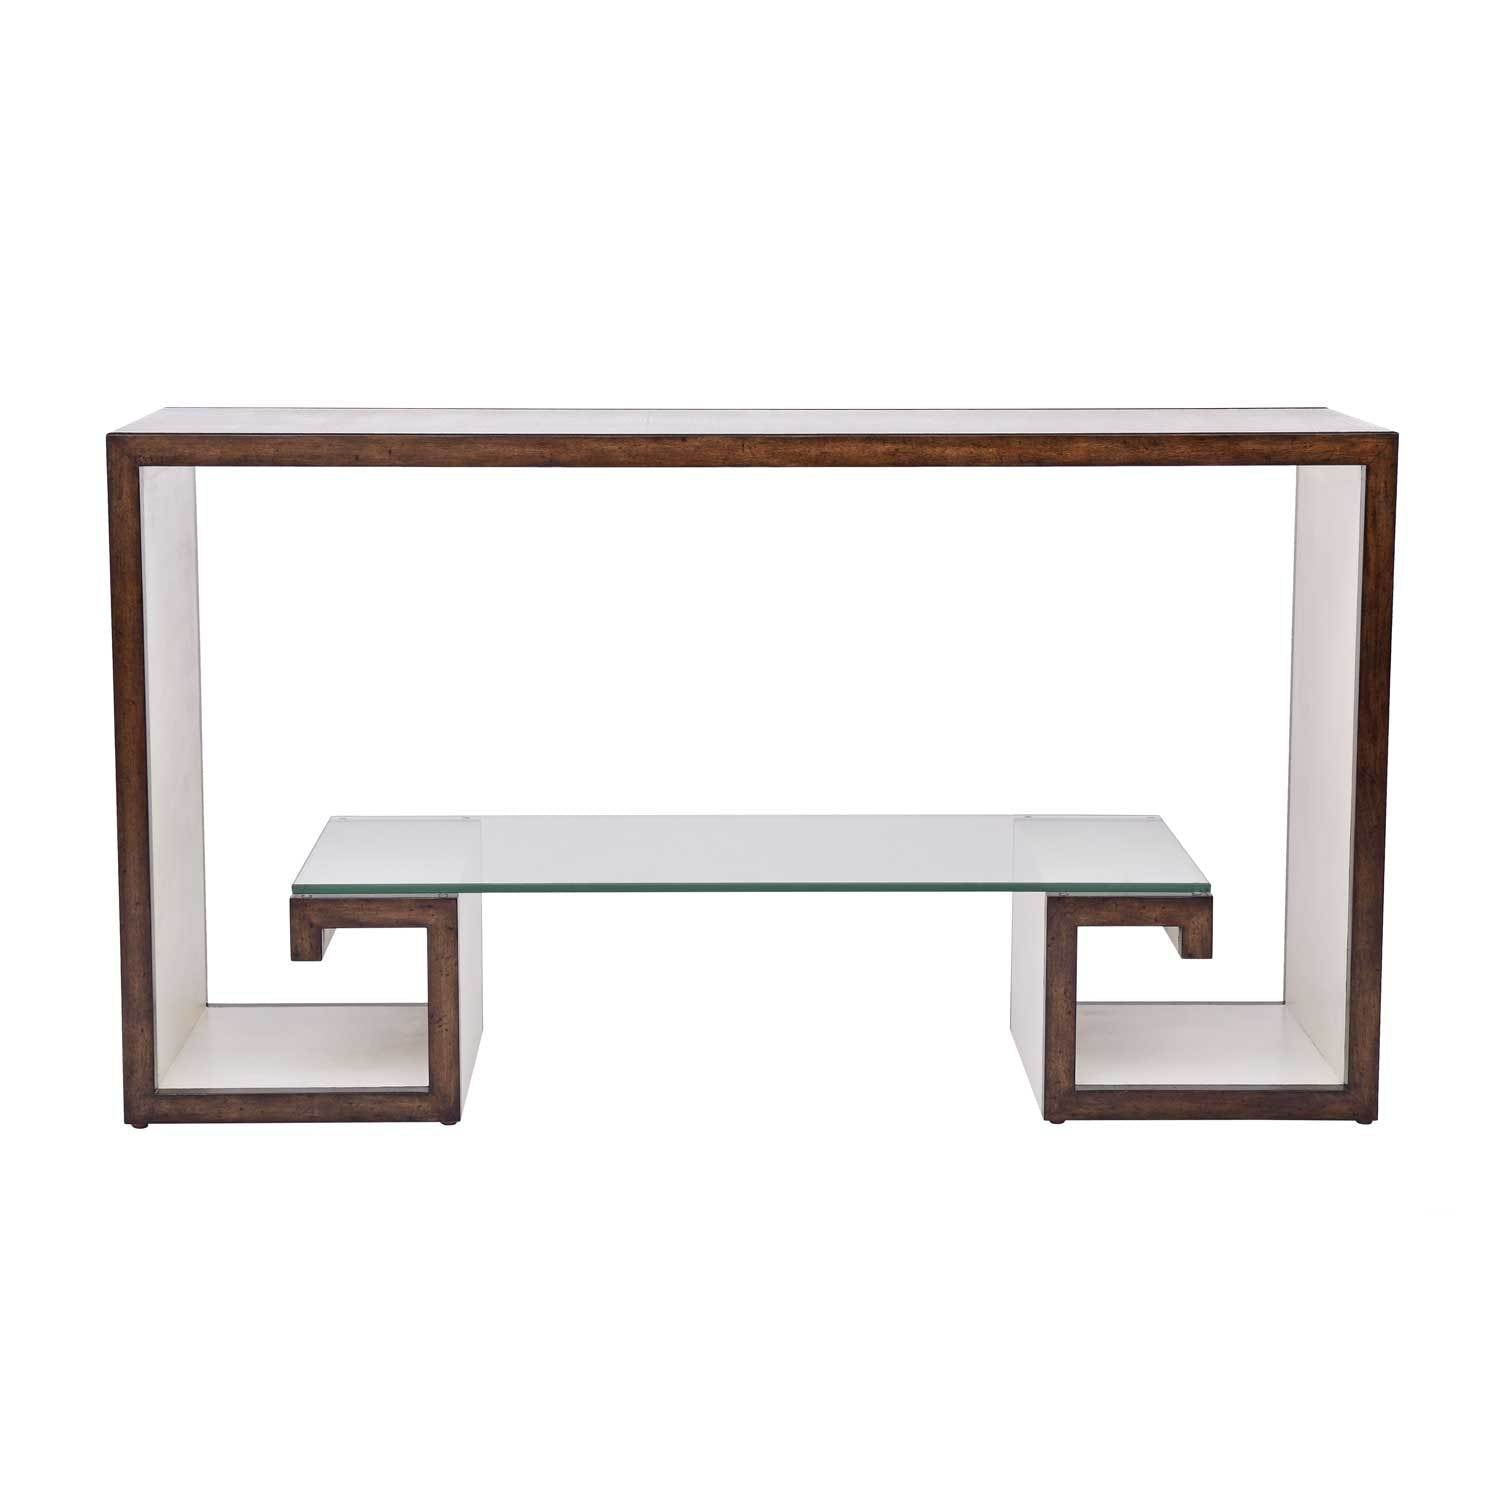 Greek Key Console Table